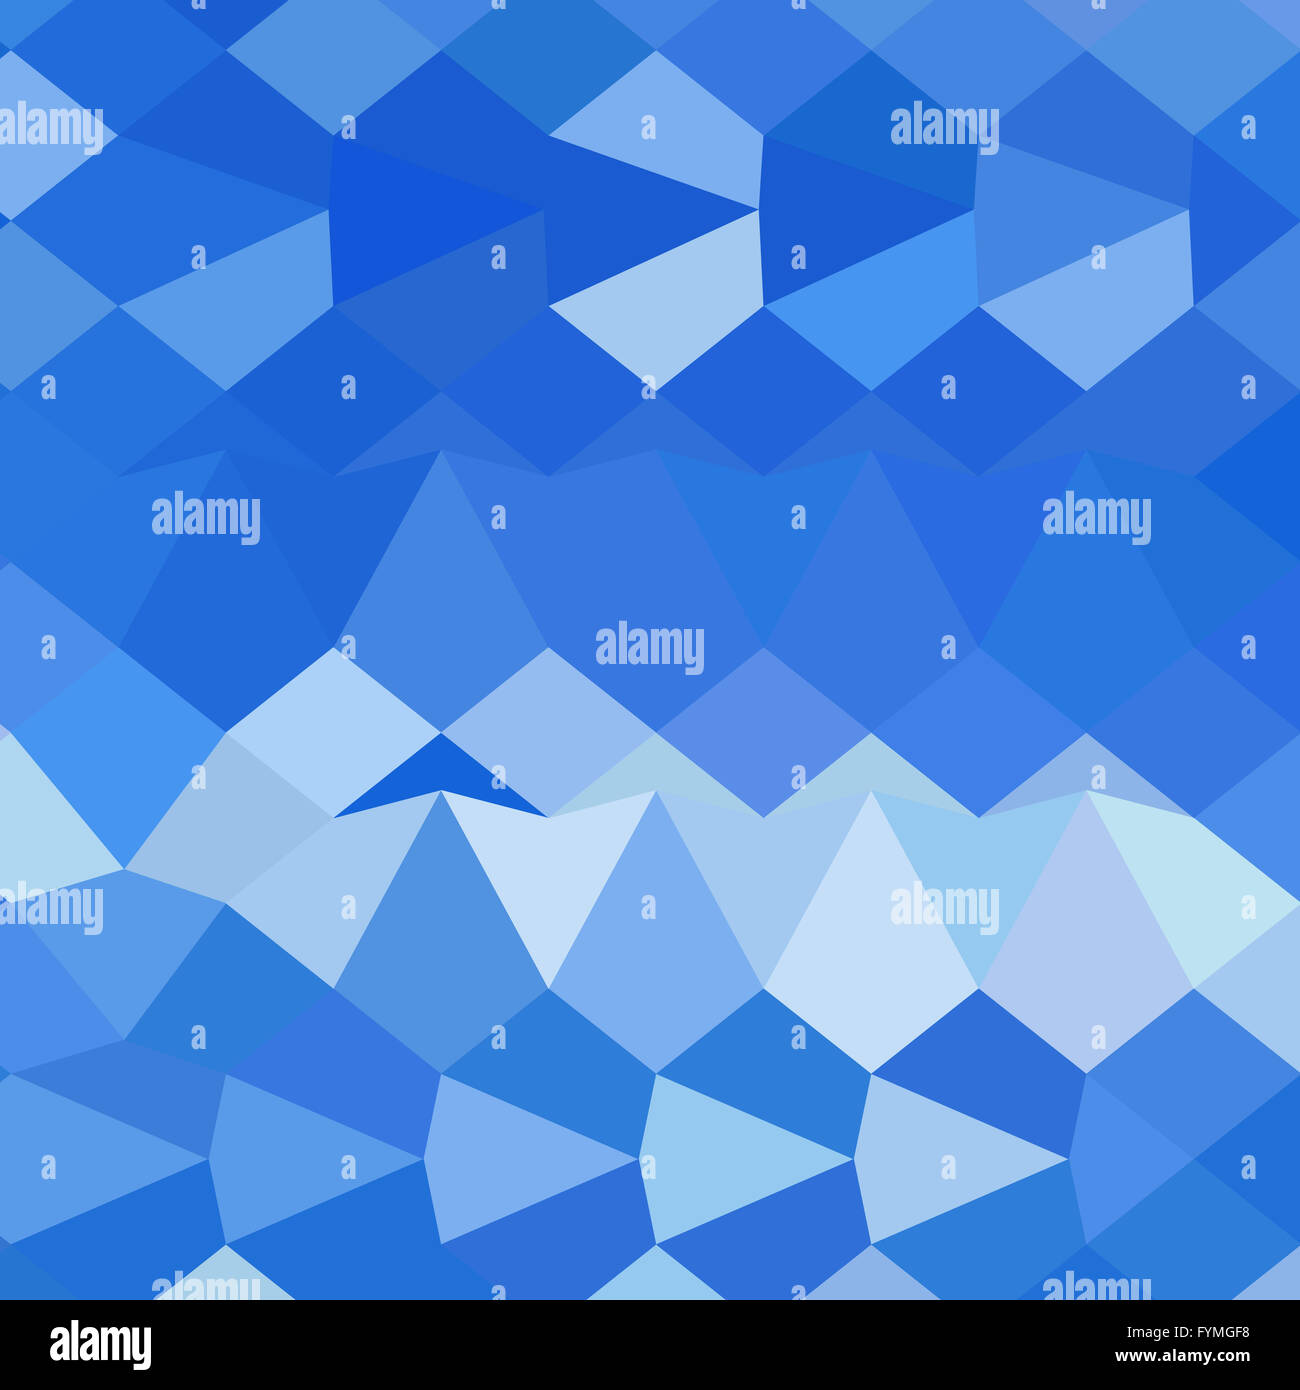 Polygon Gmbh brandeis blue abstract low polygon background stock photo royalty